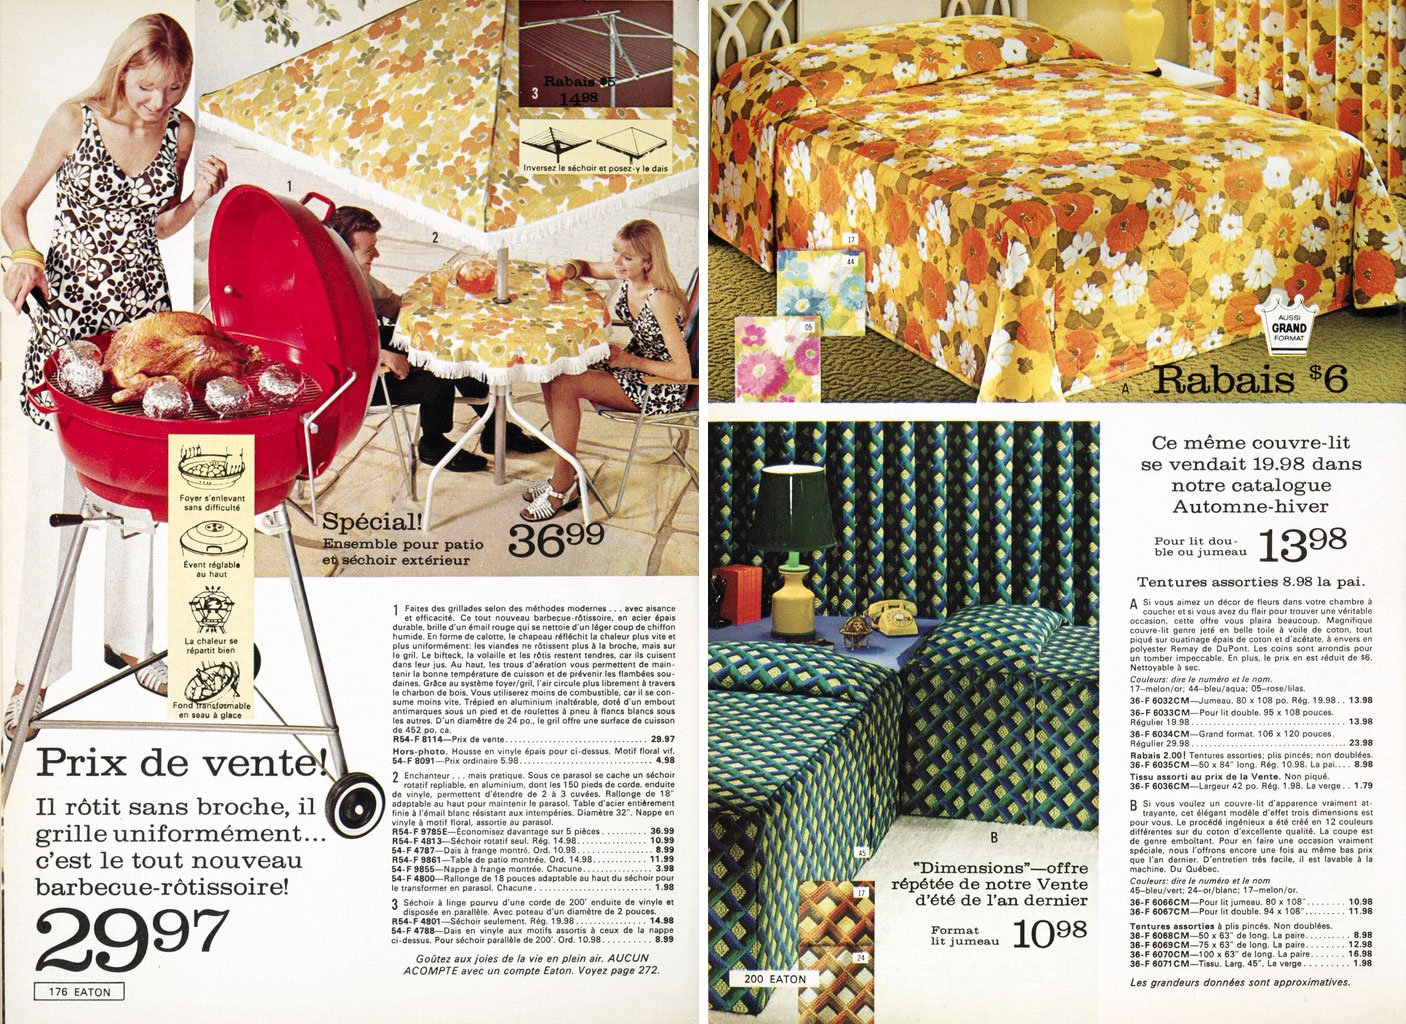 new york apartments in the 70s, 70s interior design, hippie decor, hippy homes, 1970s nyc apartment, apartment life magazine